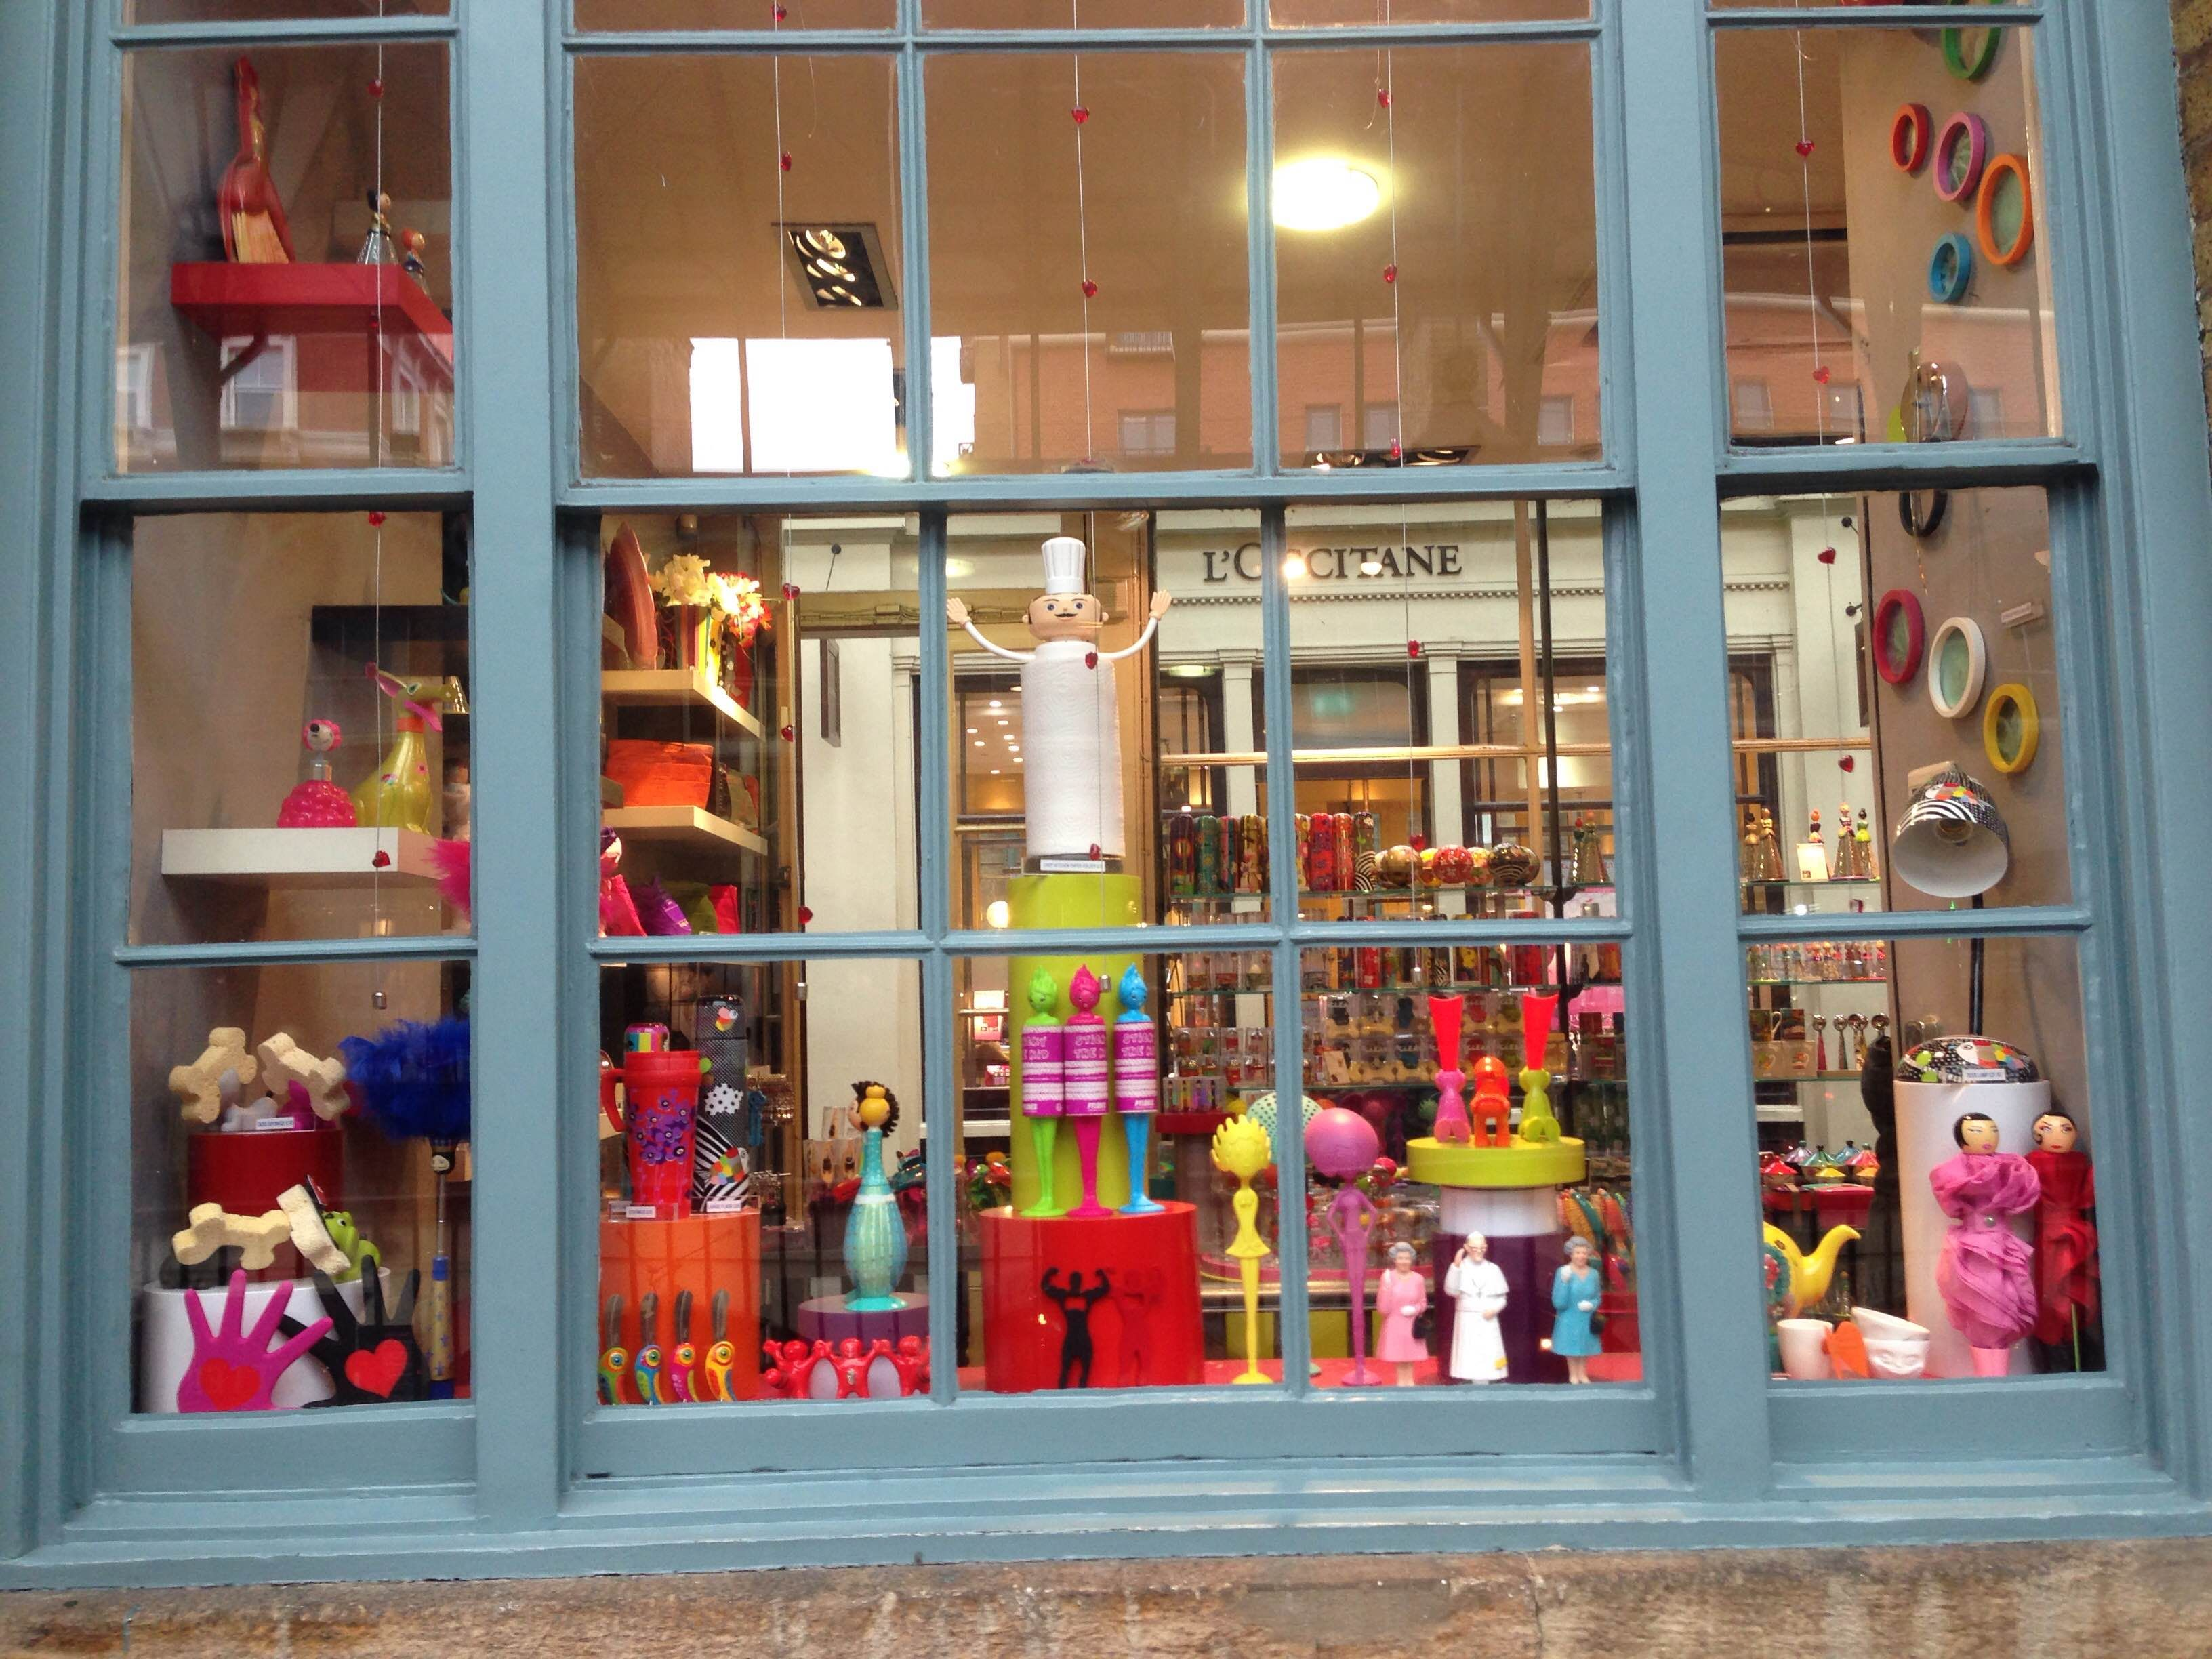 Pylones Covent Garden Piazza are sharing the love with their window display